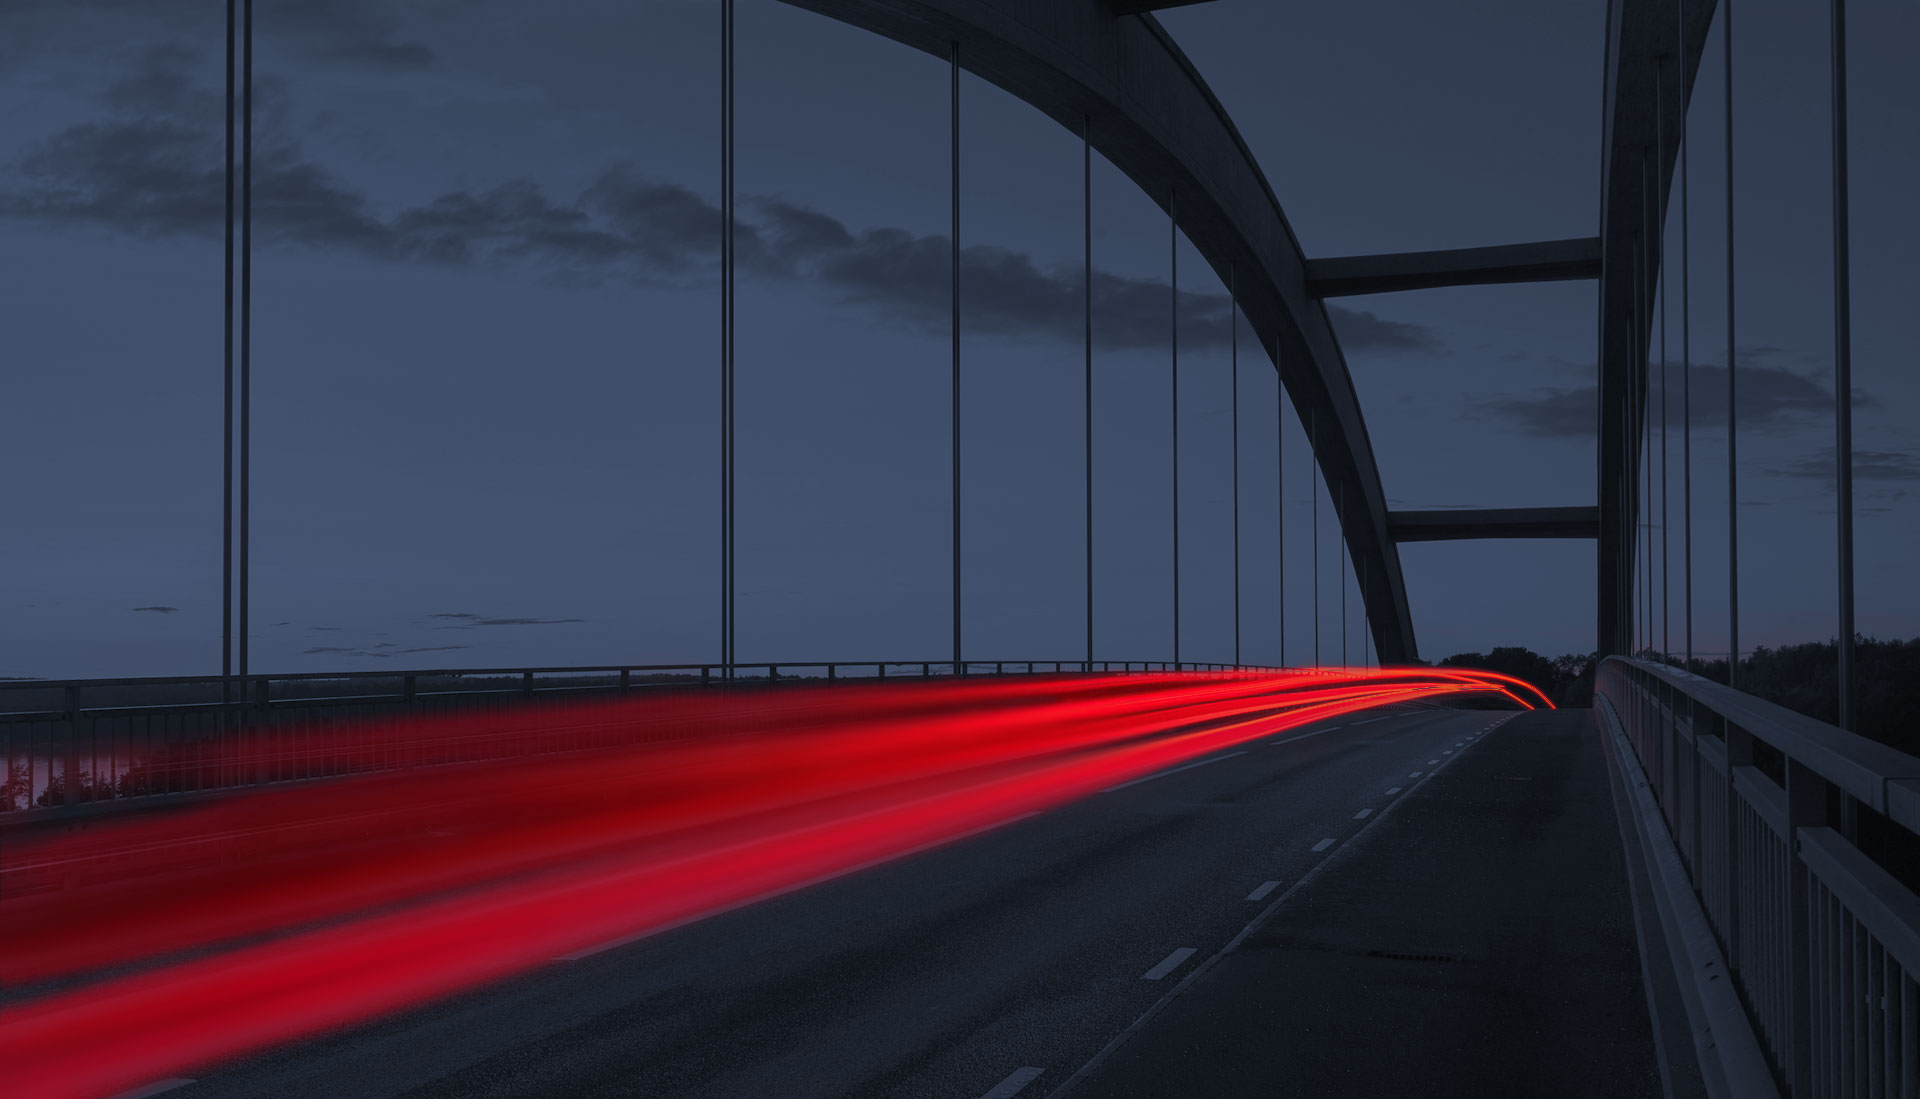 We bridge the gap between business and technology